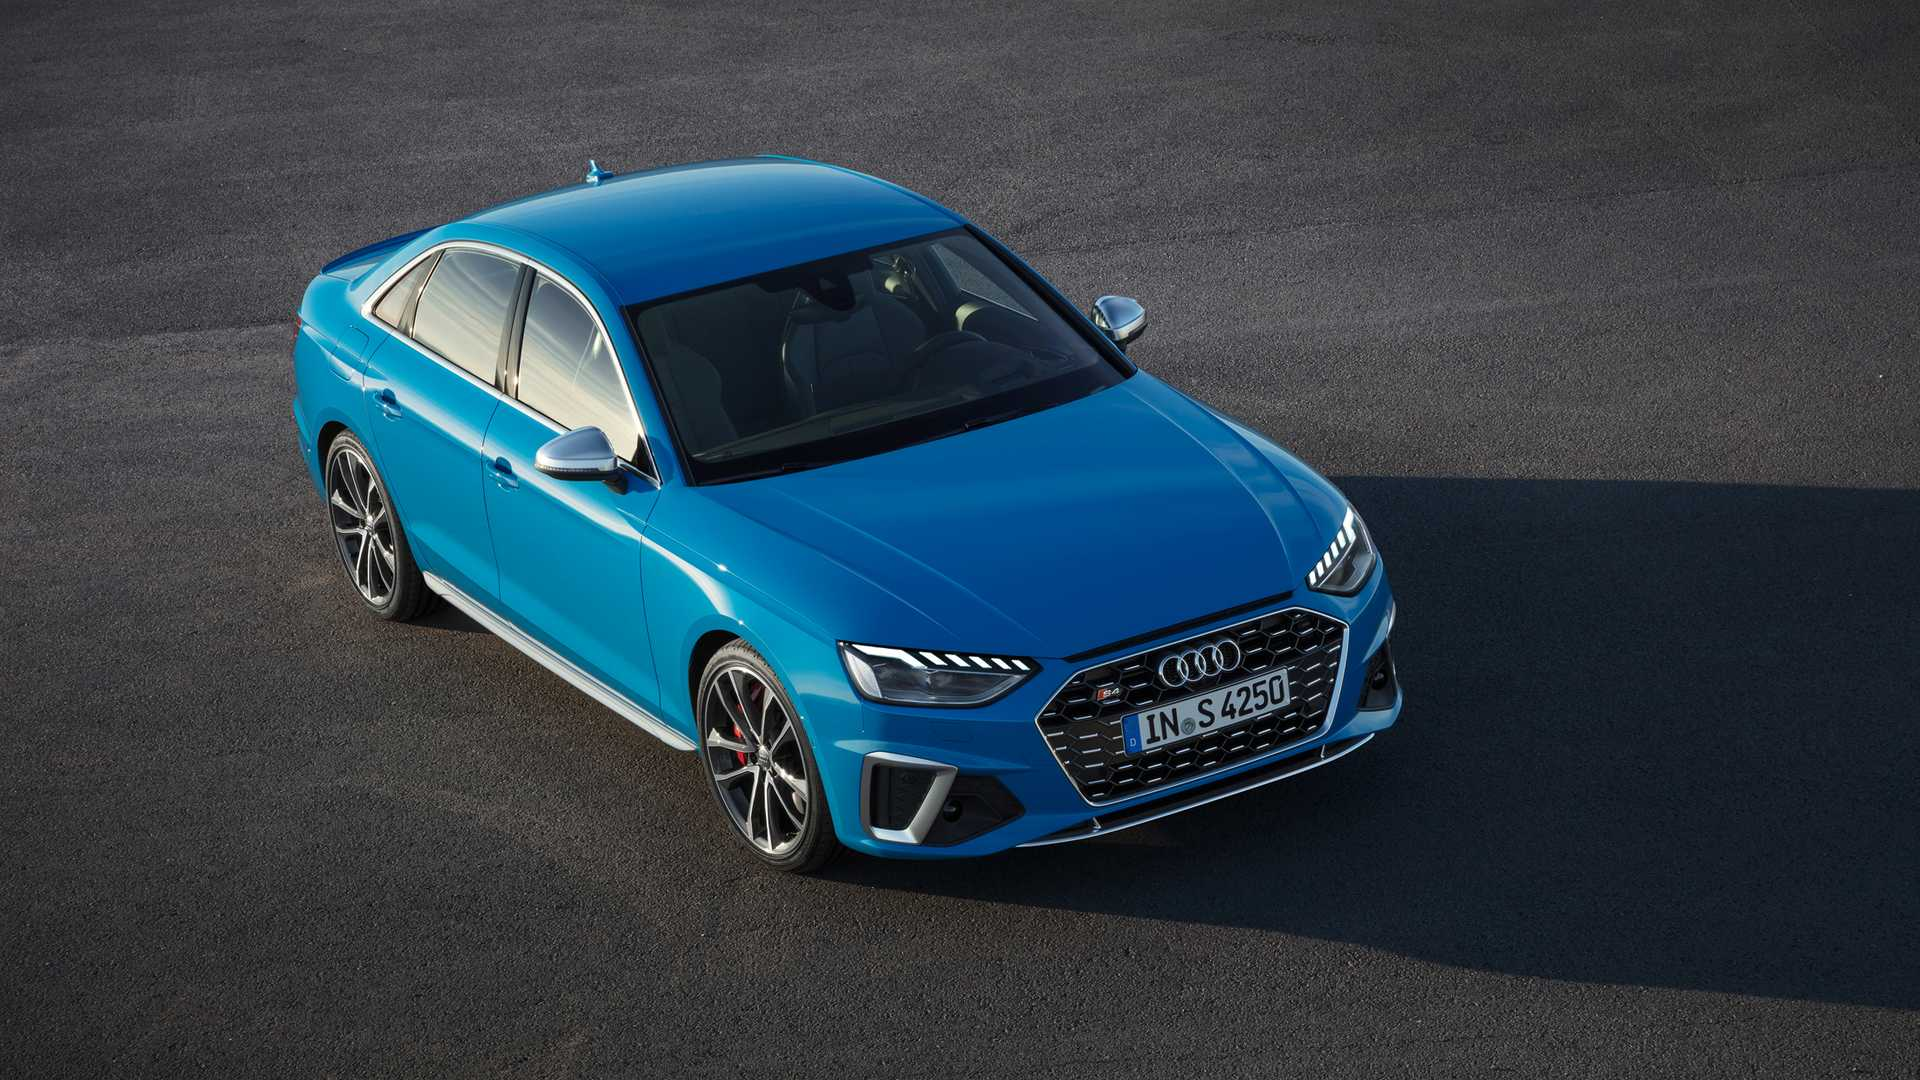 2020 Audi S4 TDI (Color: Turbo Blue) Front Three-Quarter Wallpapers (2)